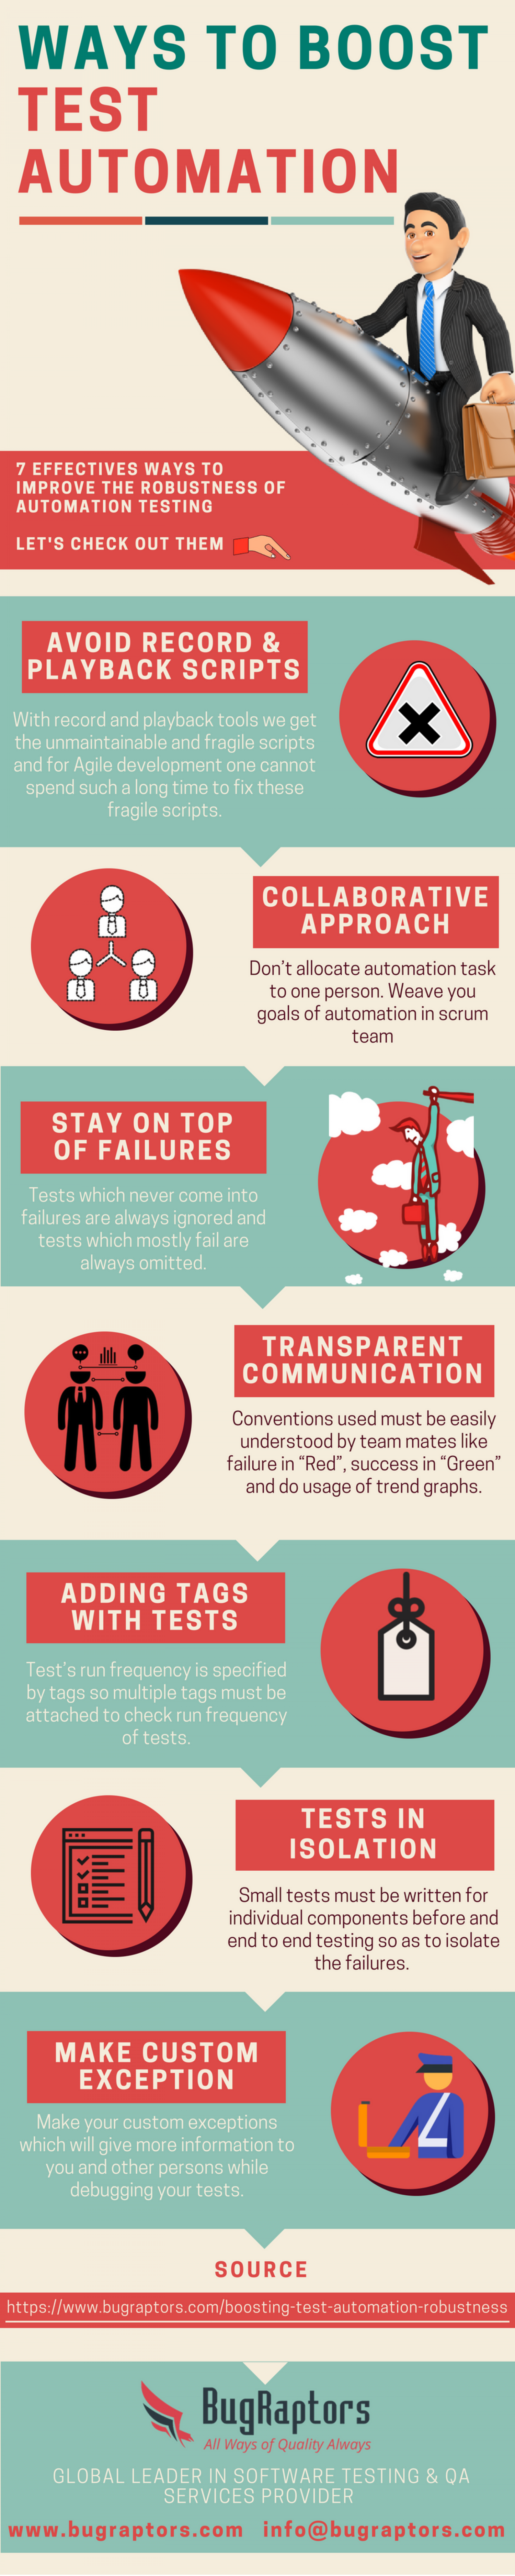 How To Improve The Robustness of Test Automation -Check Out The Effective Ways! Infographic